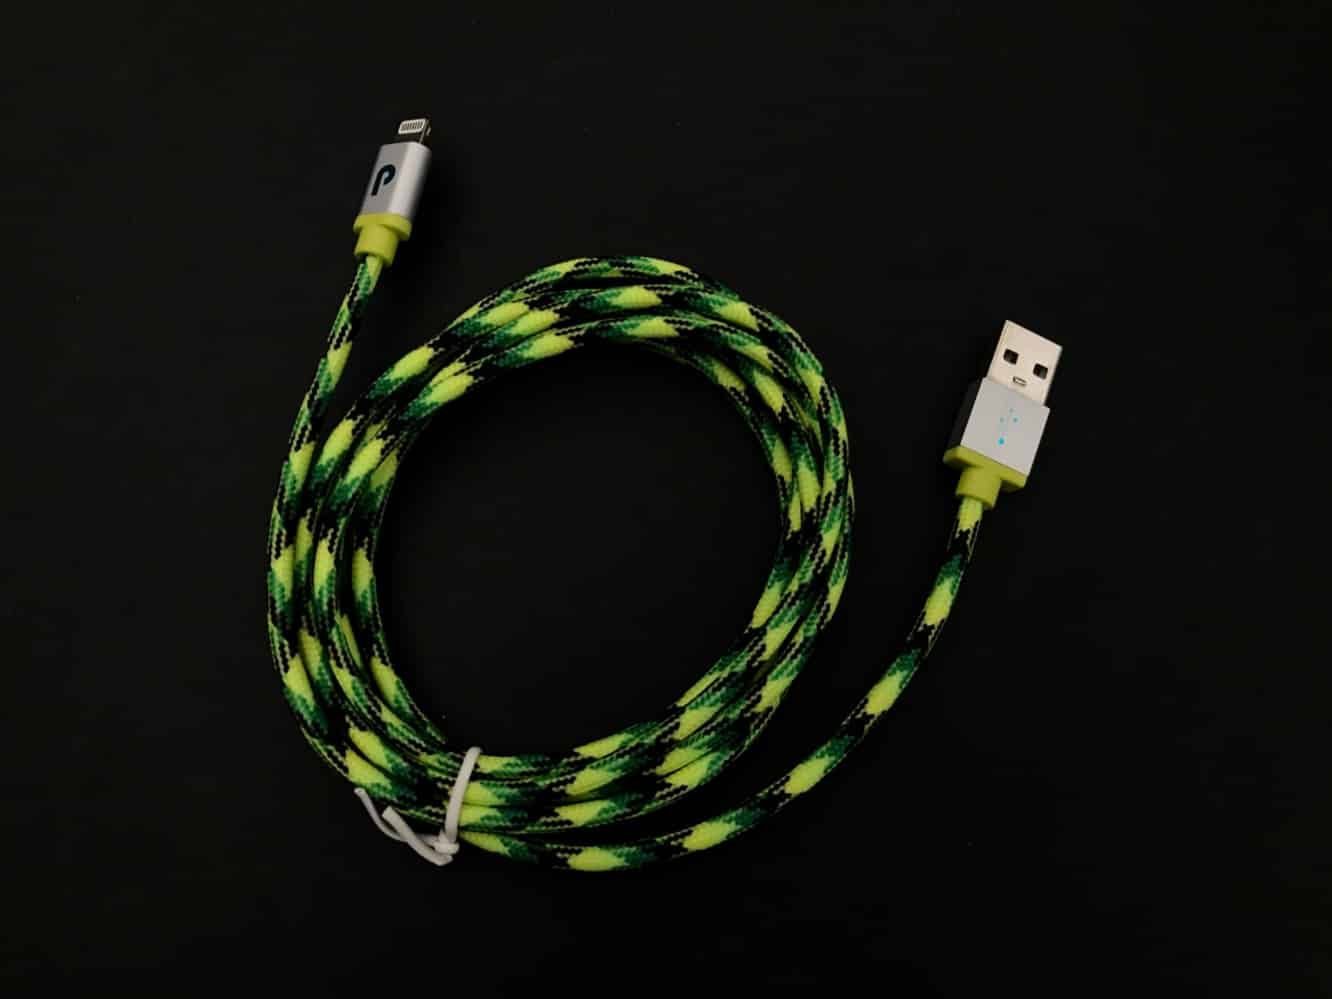 Paracable Lightning Cables — Continuum, Gecko, 1.21 Giggawatts